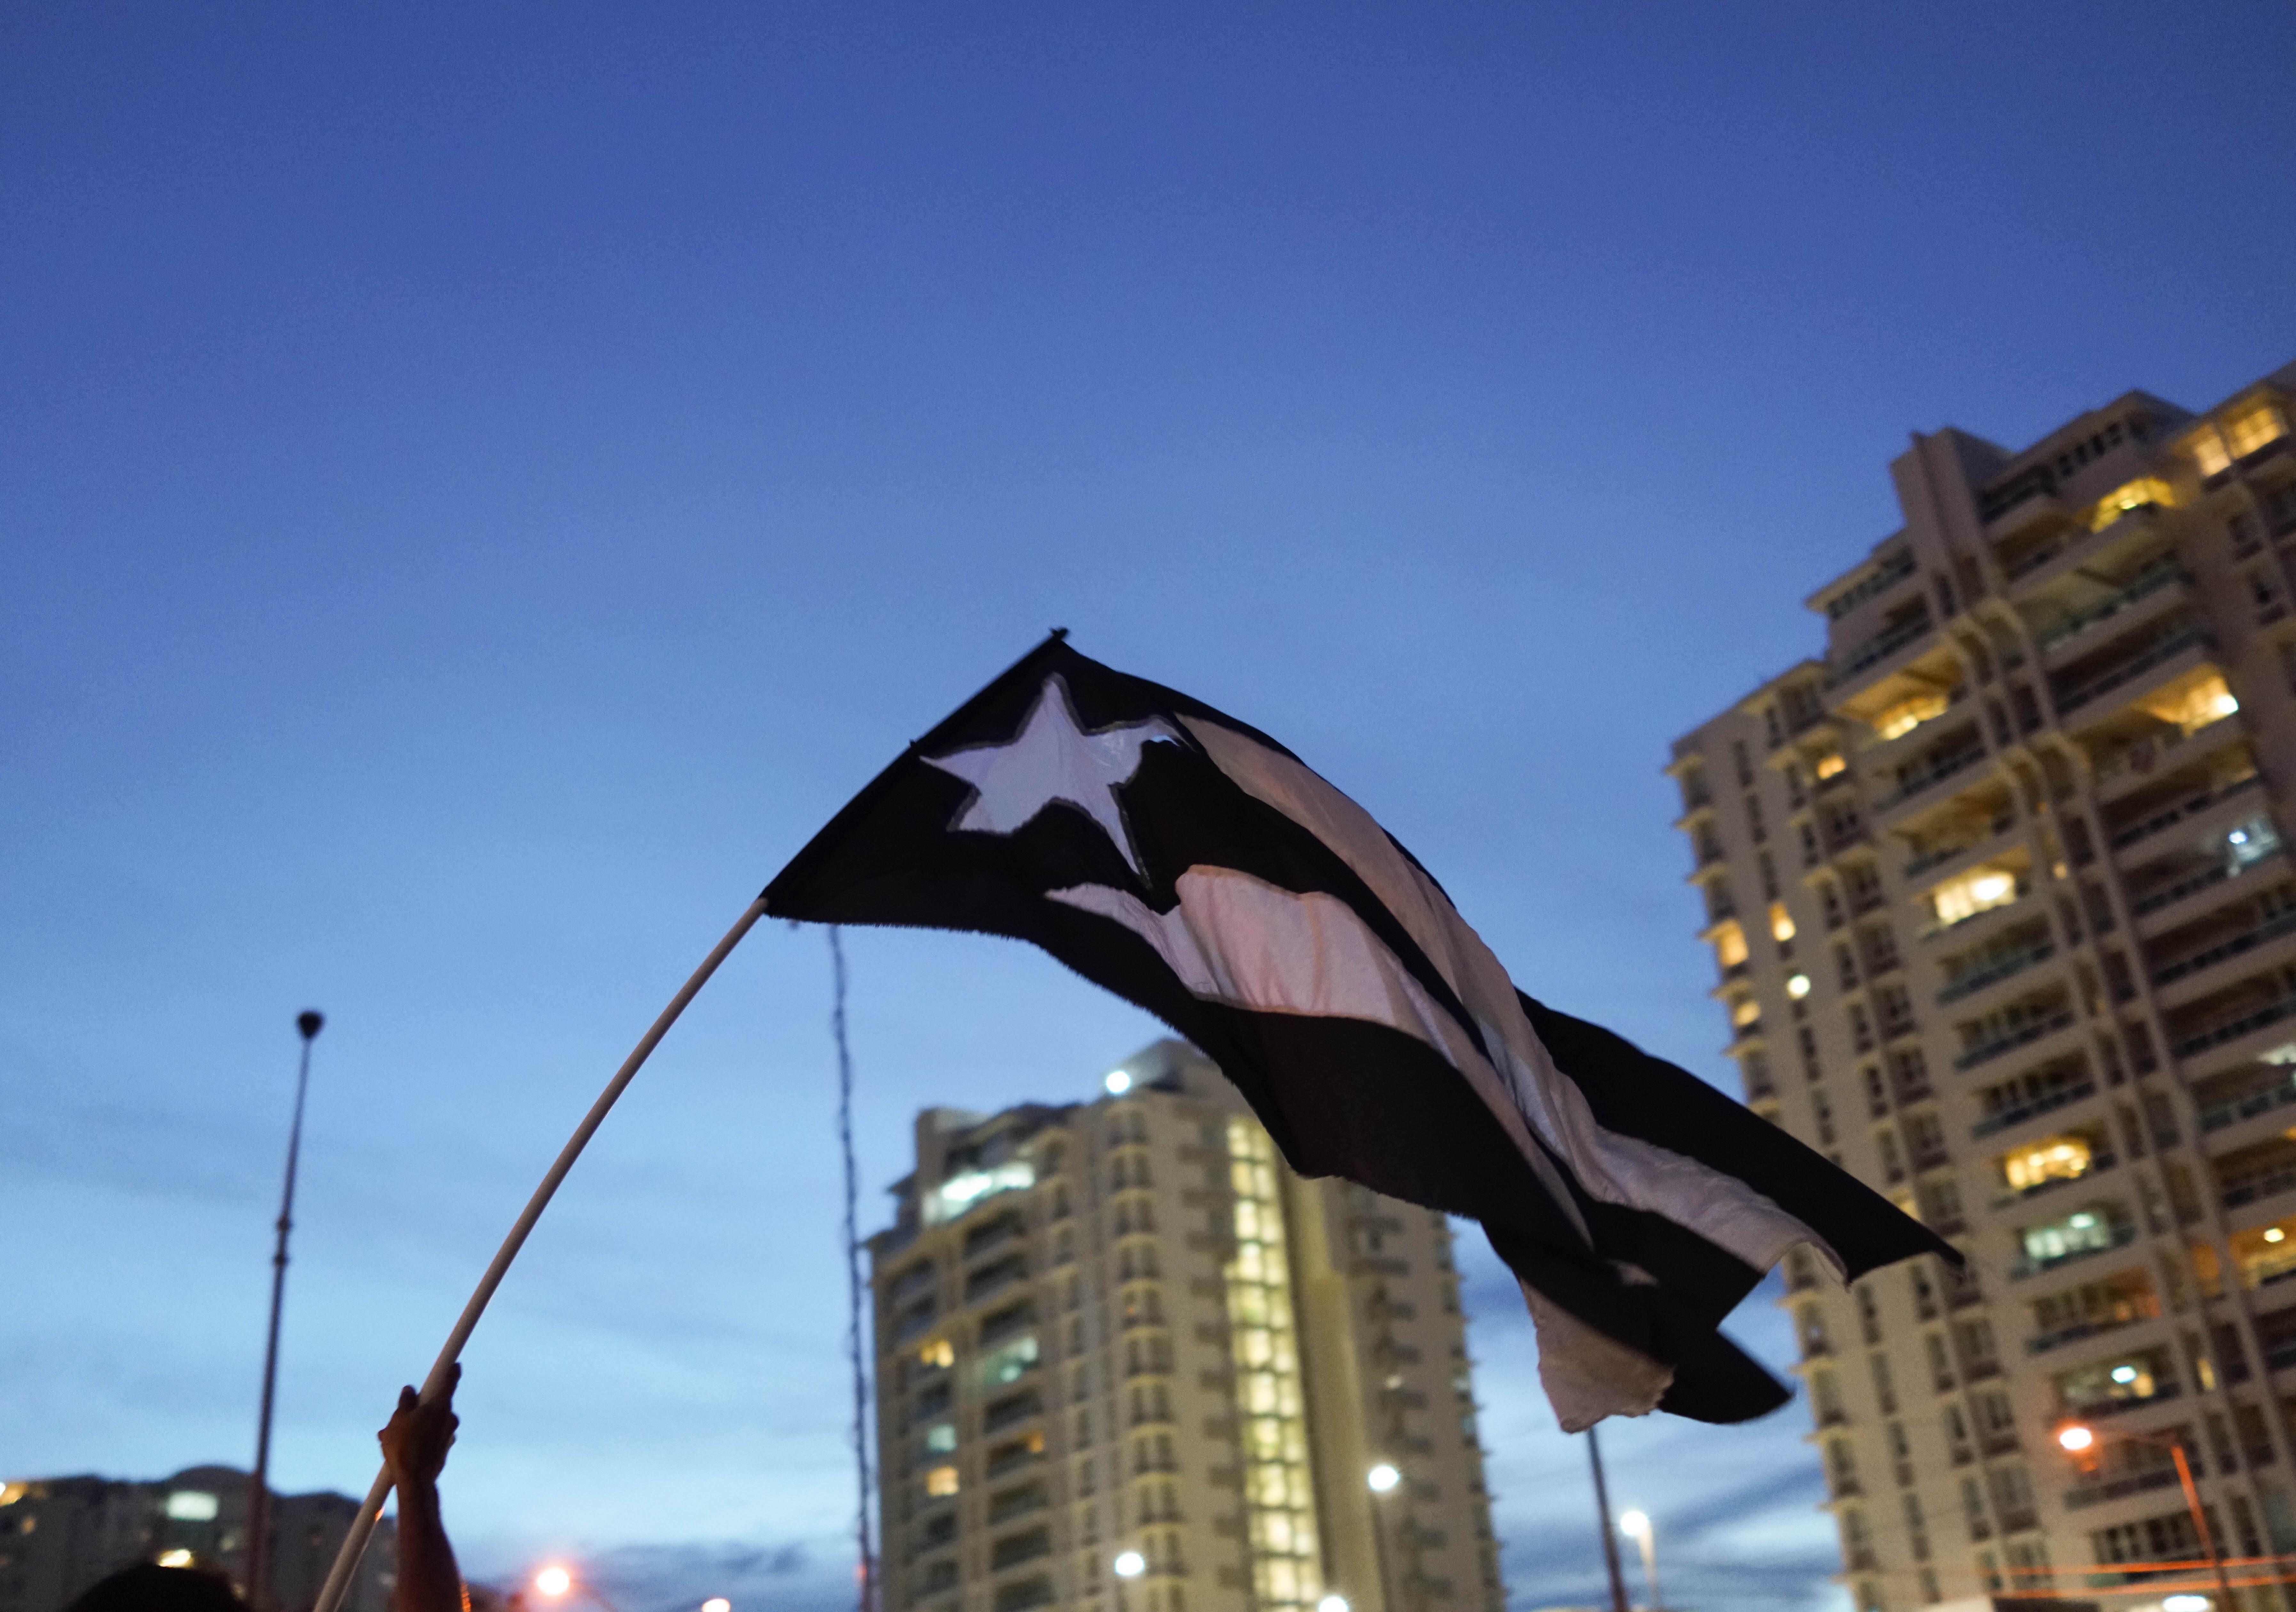 Puerto Rico Gov. Wanda Vázquez Is Running for a Full Term in 2020